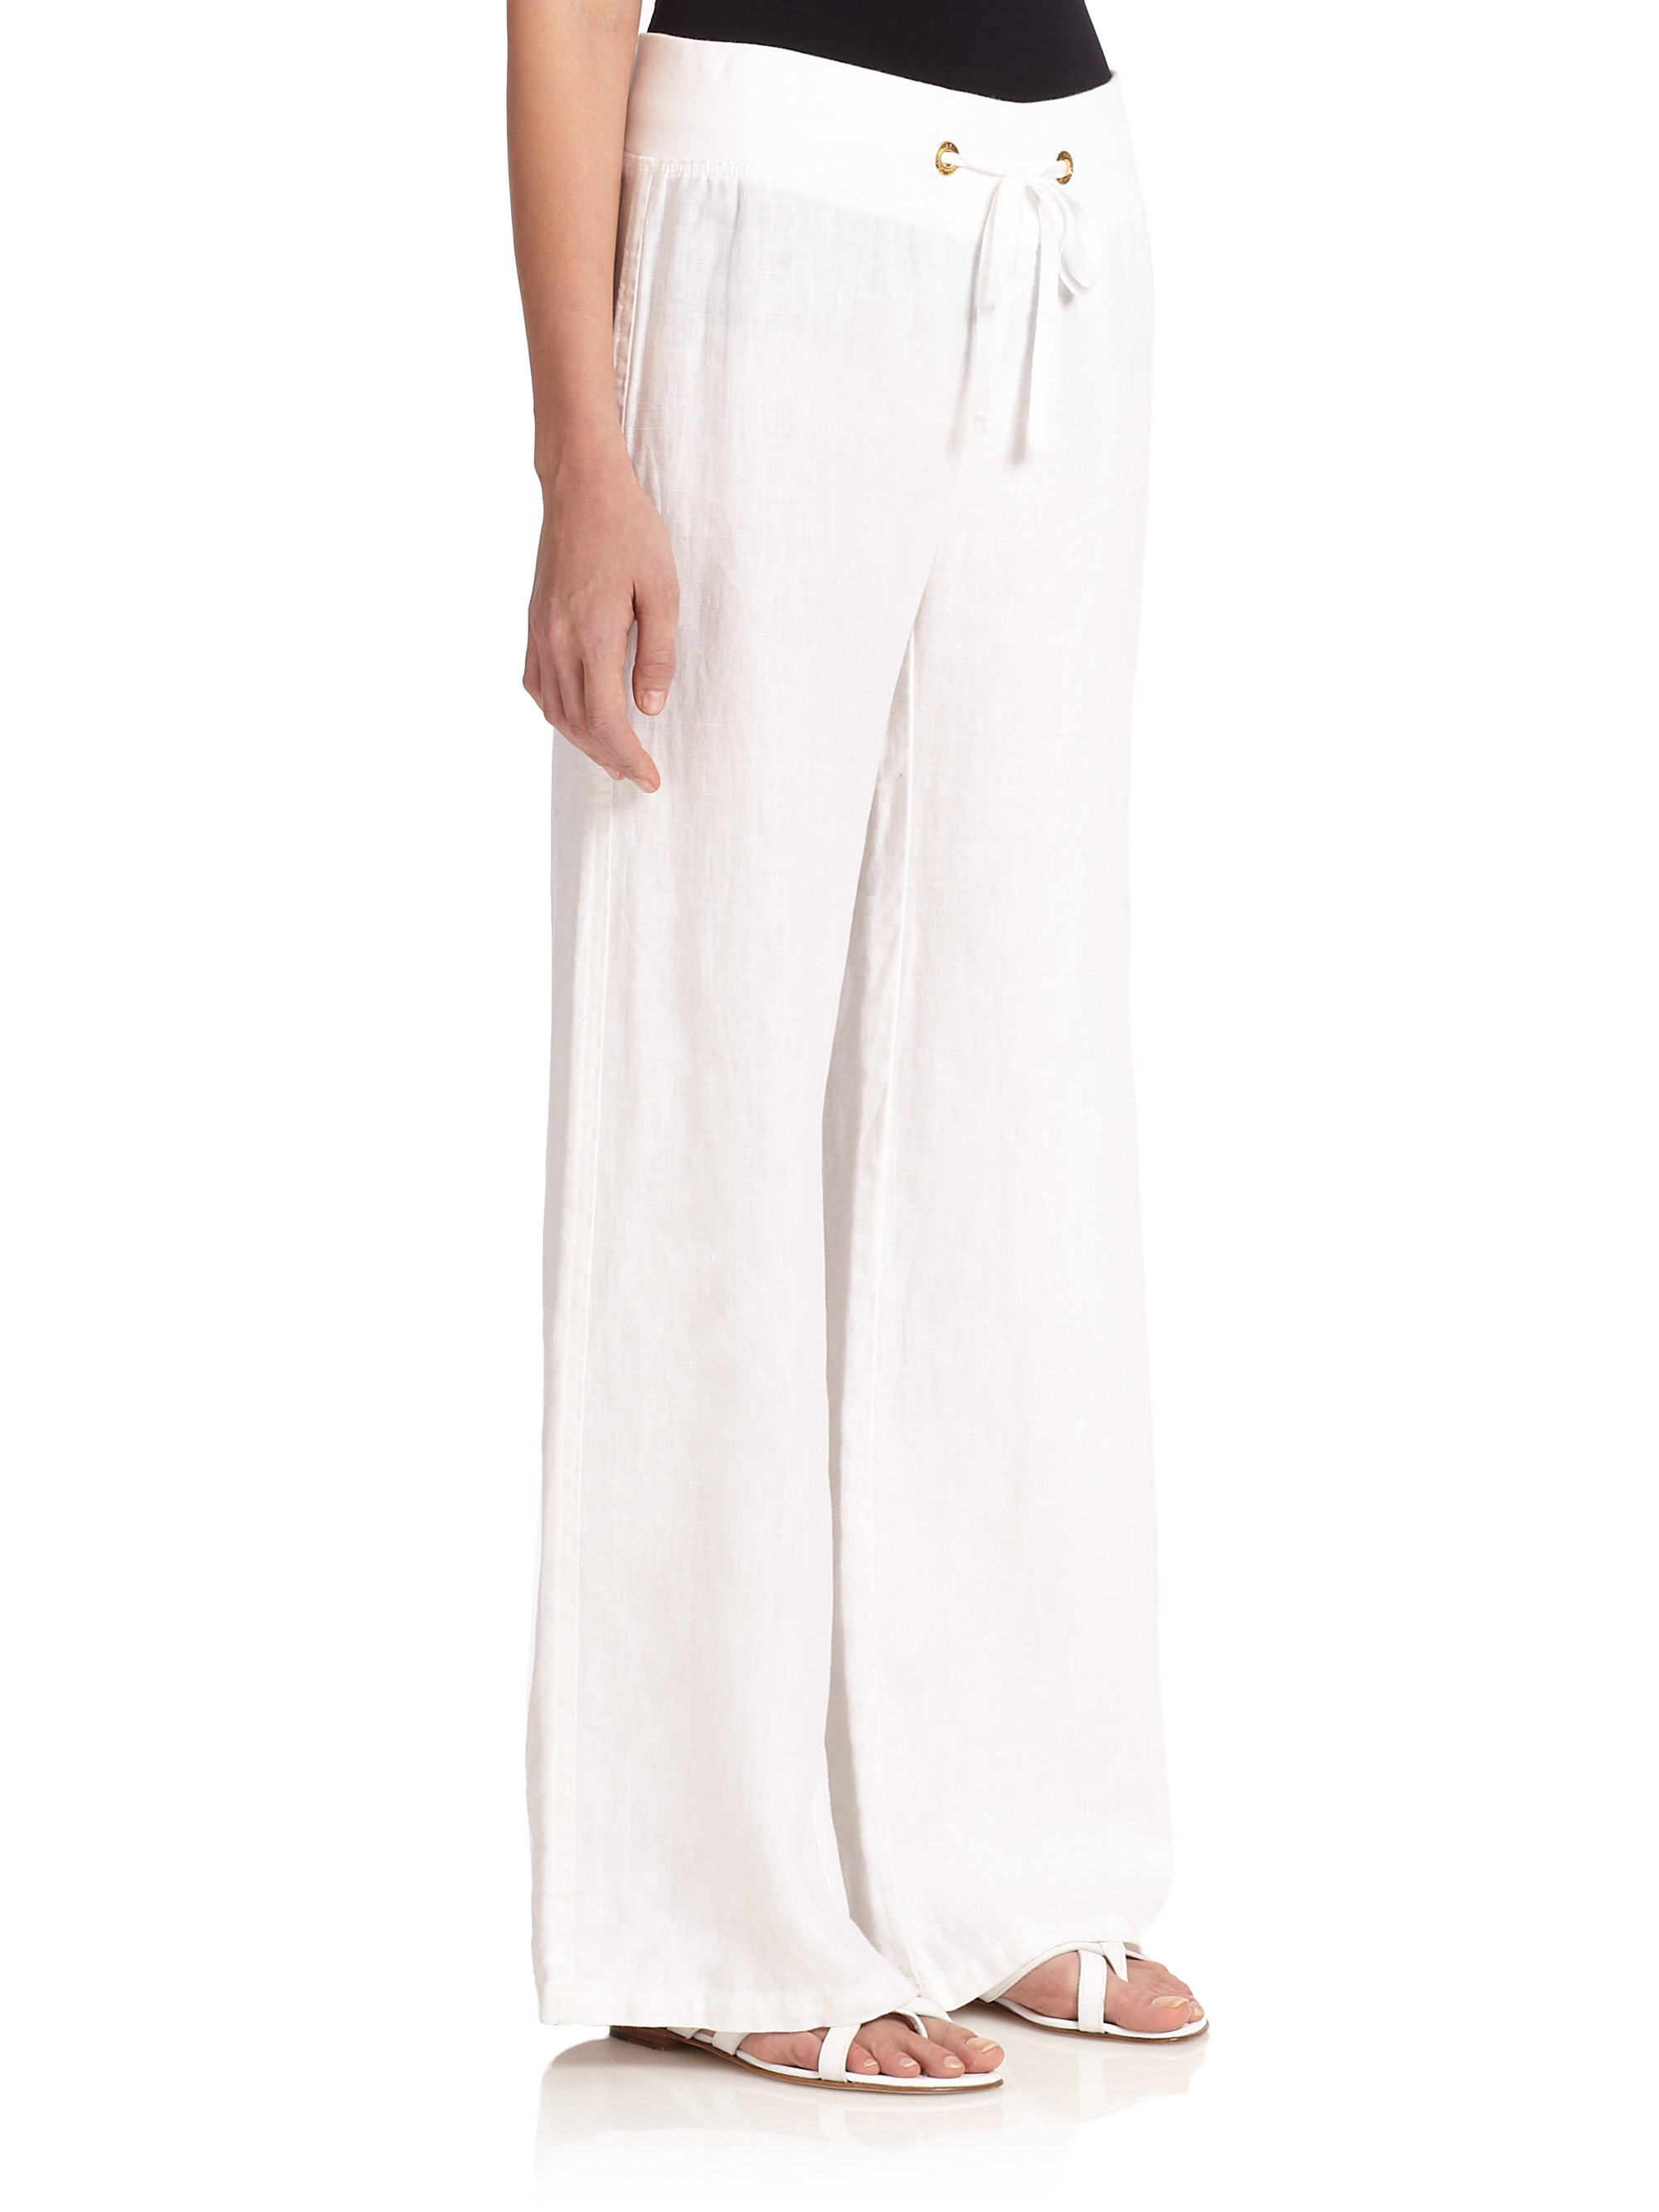 Fantastic  Beach Pants On Pinterest  Summer Beach Fashion Beach Look And Beach